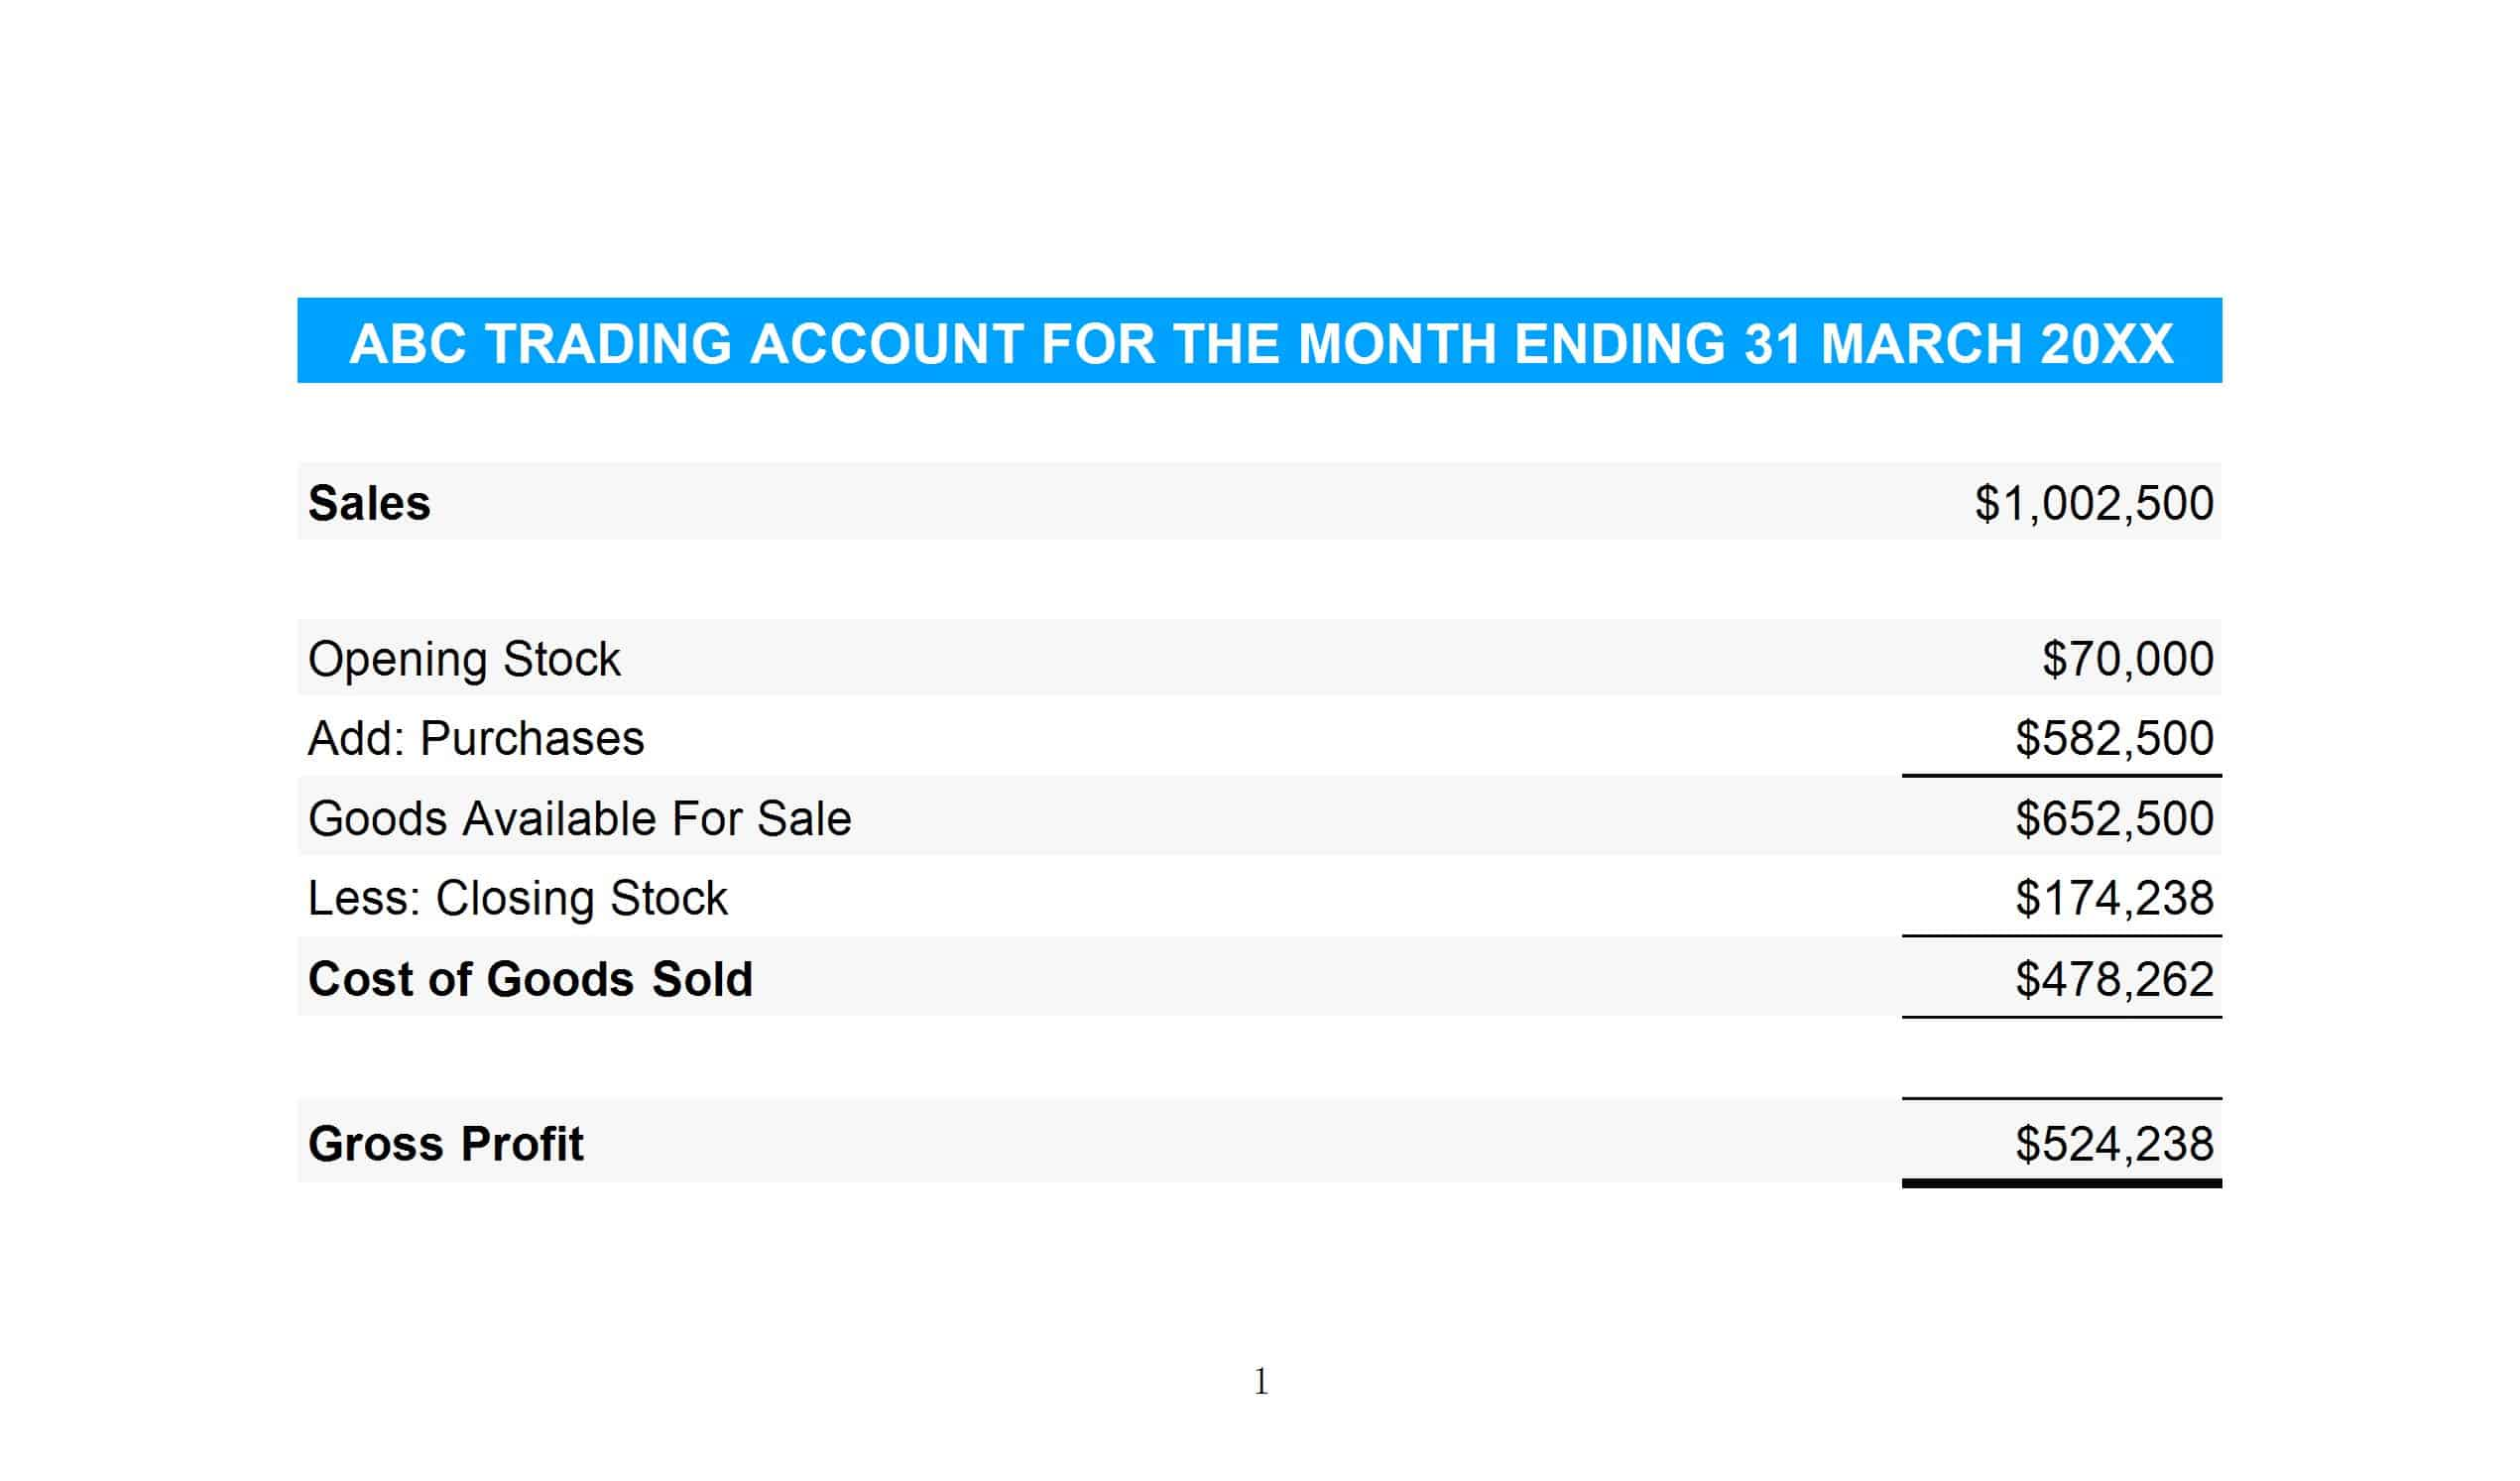 ABC trading account for the month of March 20XX showing the result of a weighted average perpetual system.